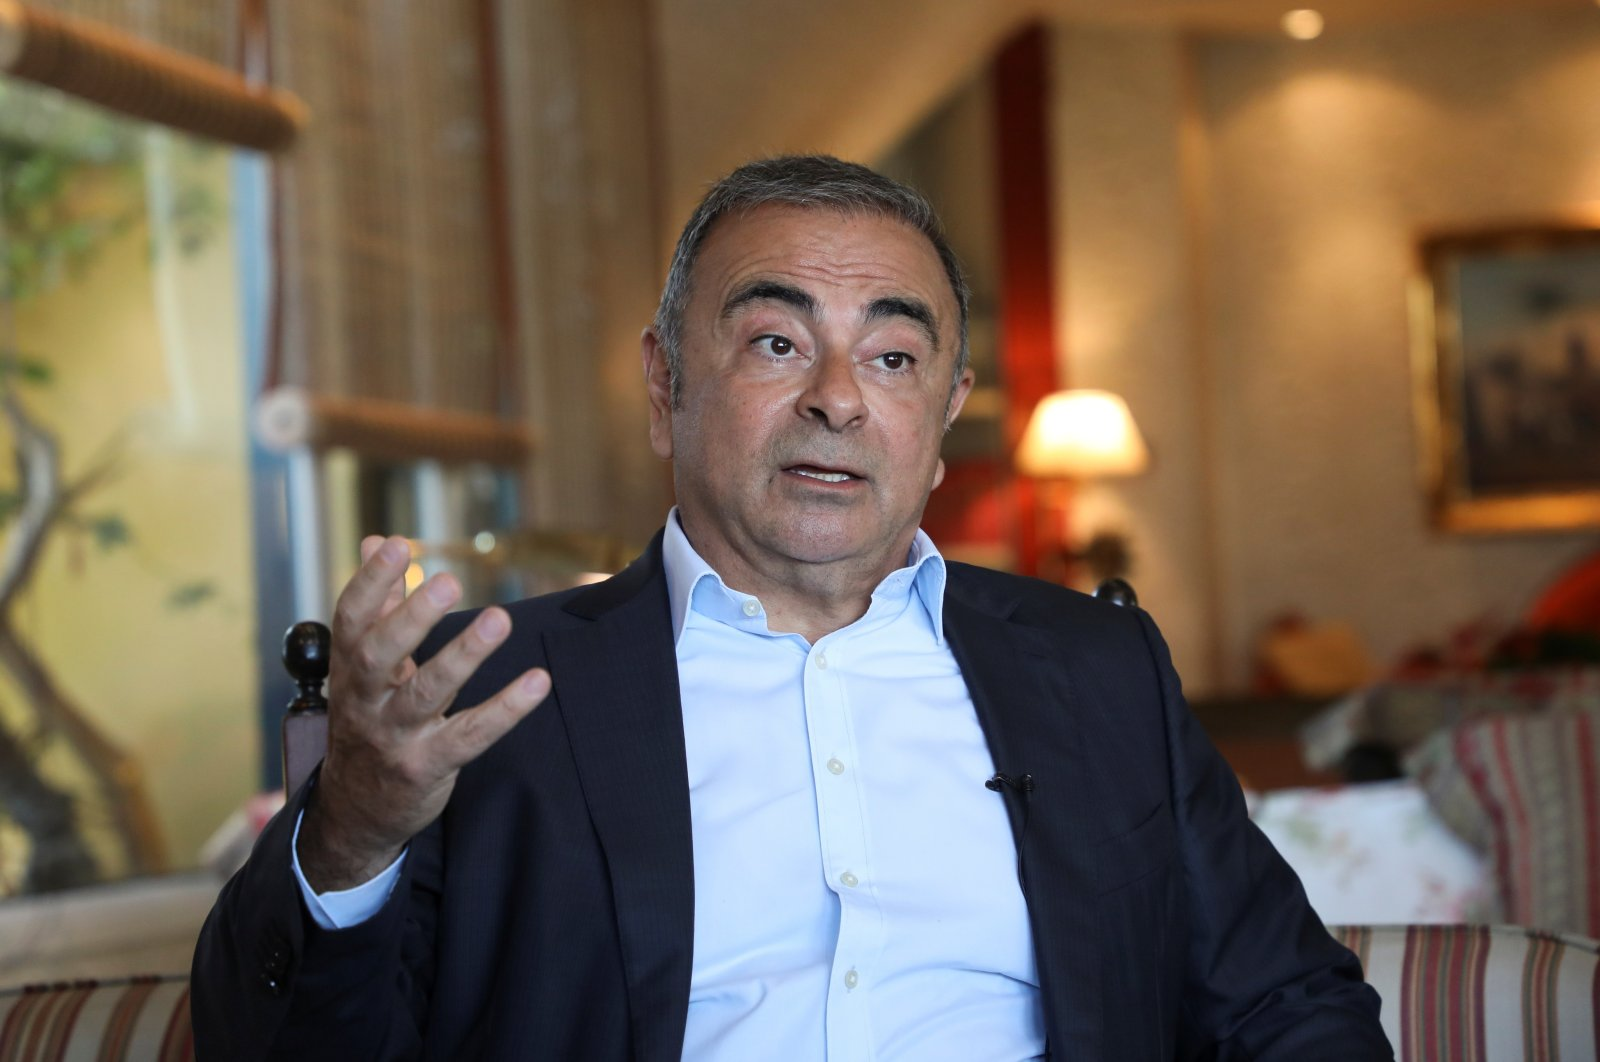 Former Nissan Chairman Carlos Ghosn talks during an interview in Beirut, Lebanon, June 14, 2021. (Reuters Photo)